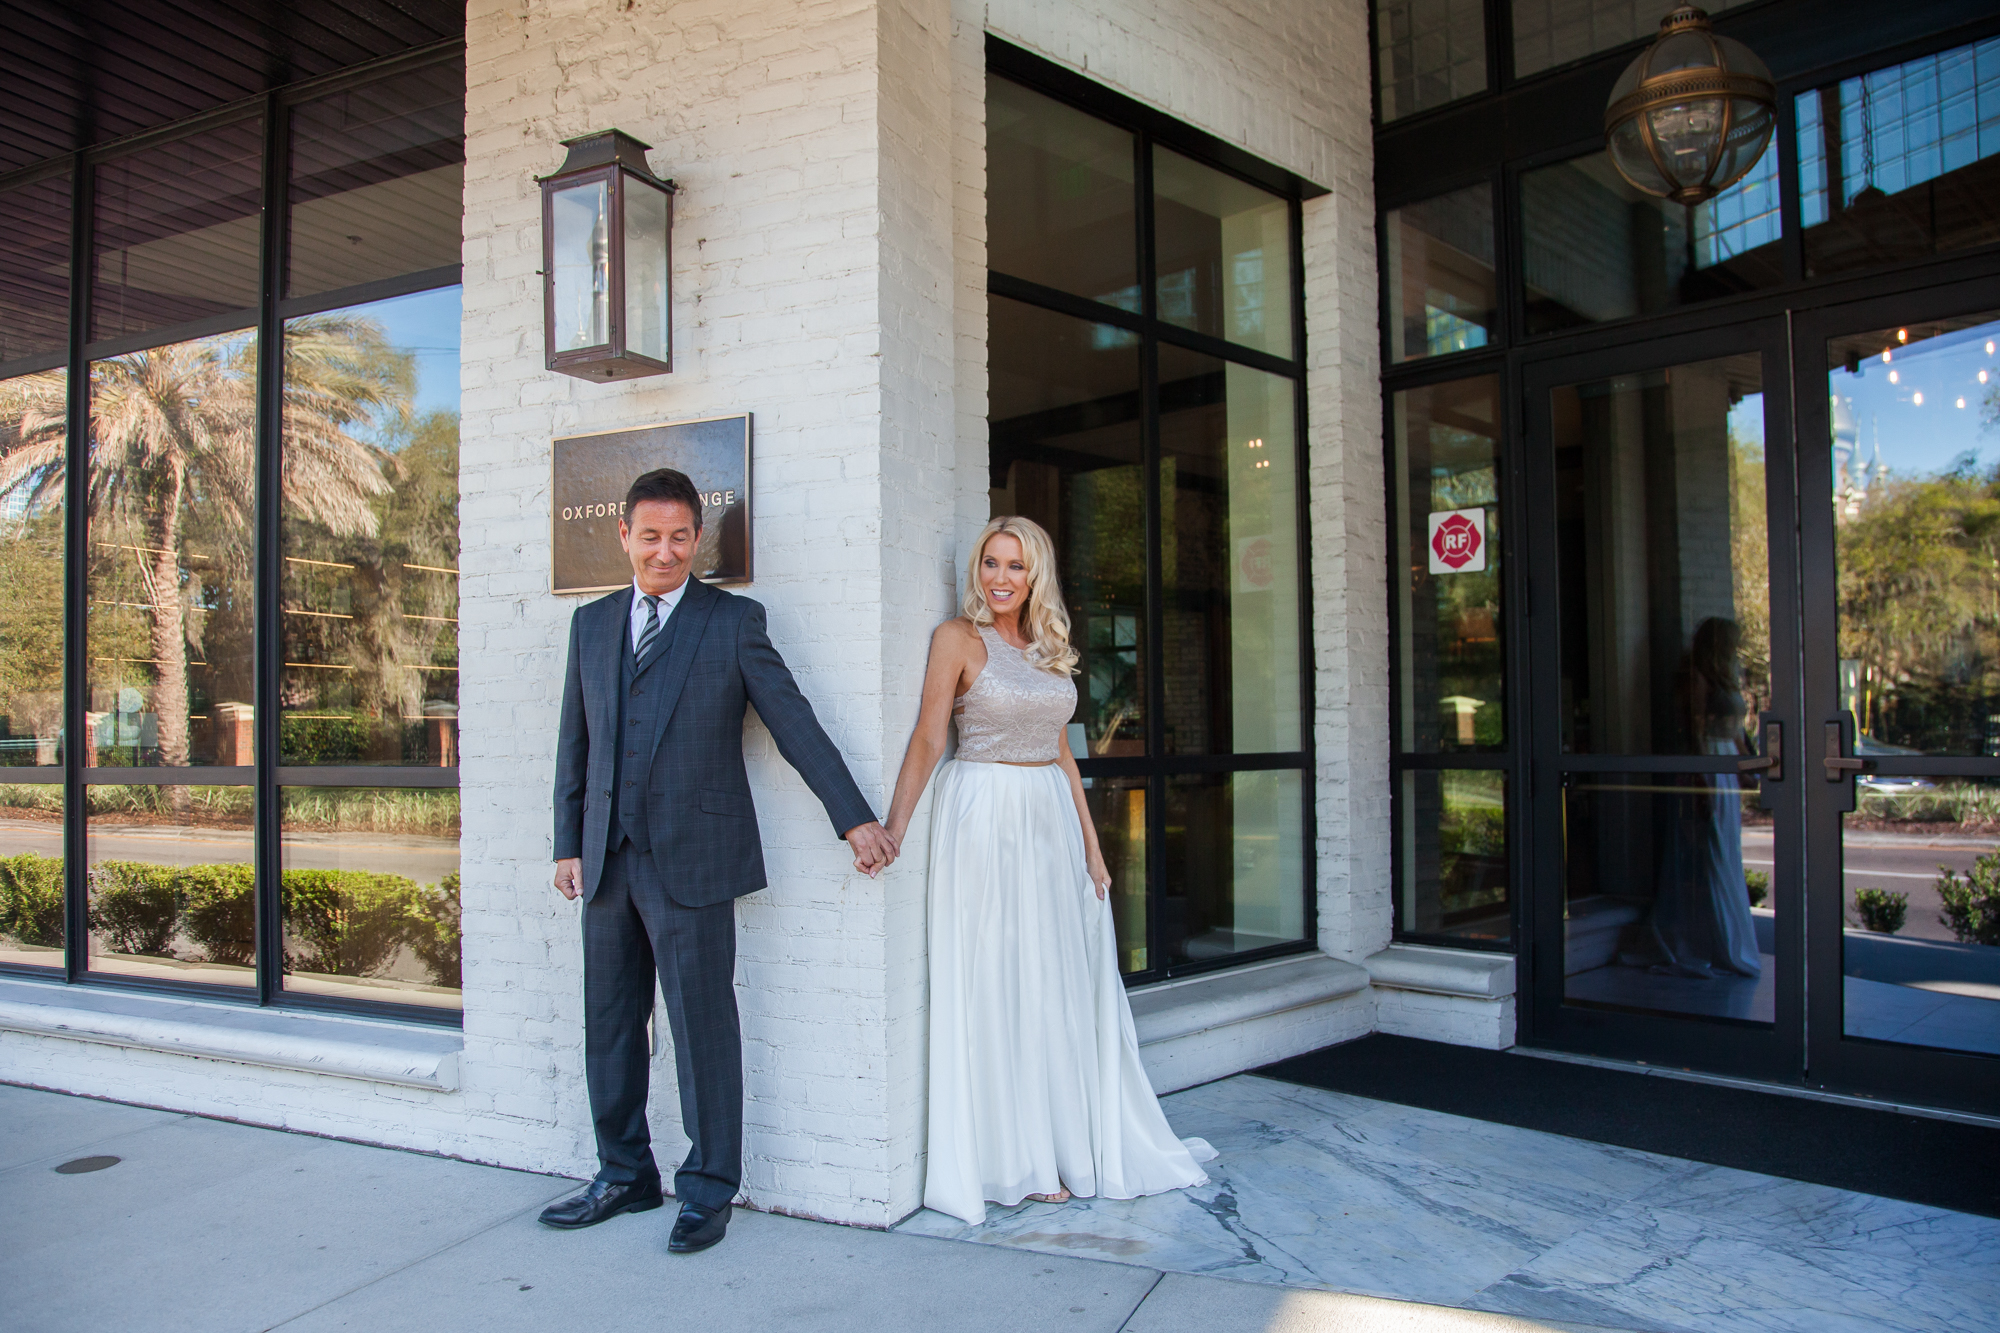 Oxford-Exchange-first-look-photo, Tampa-wedding